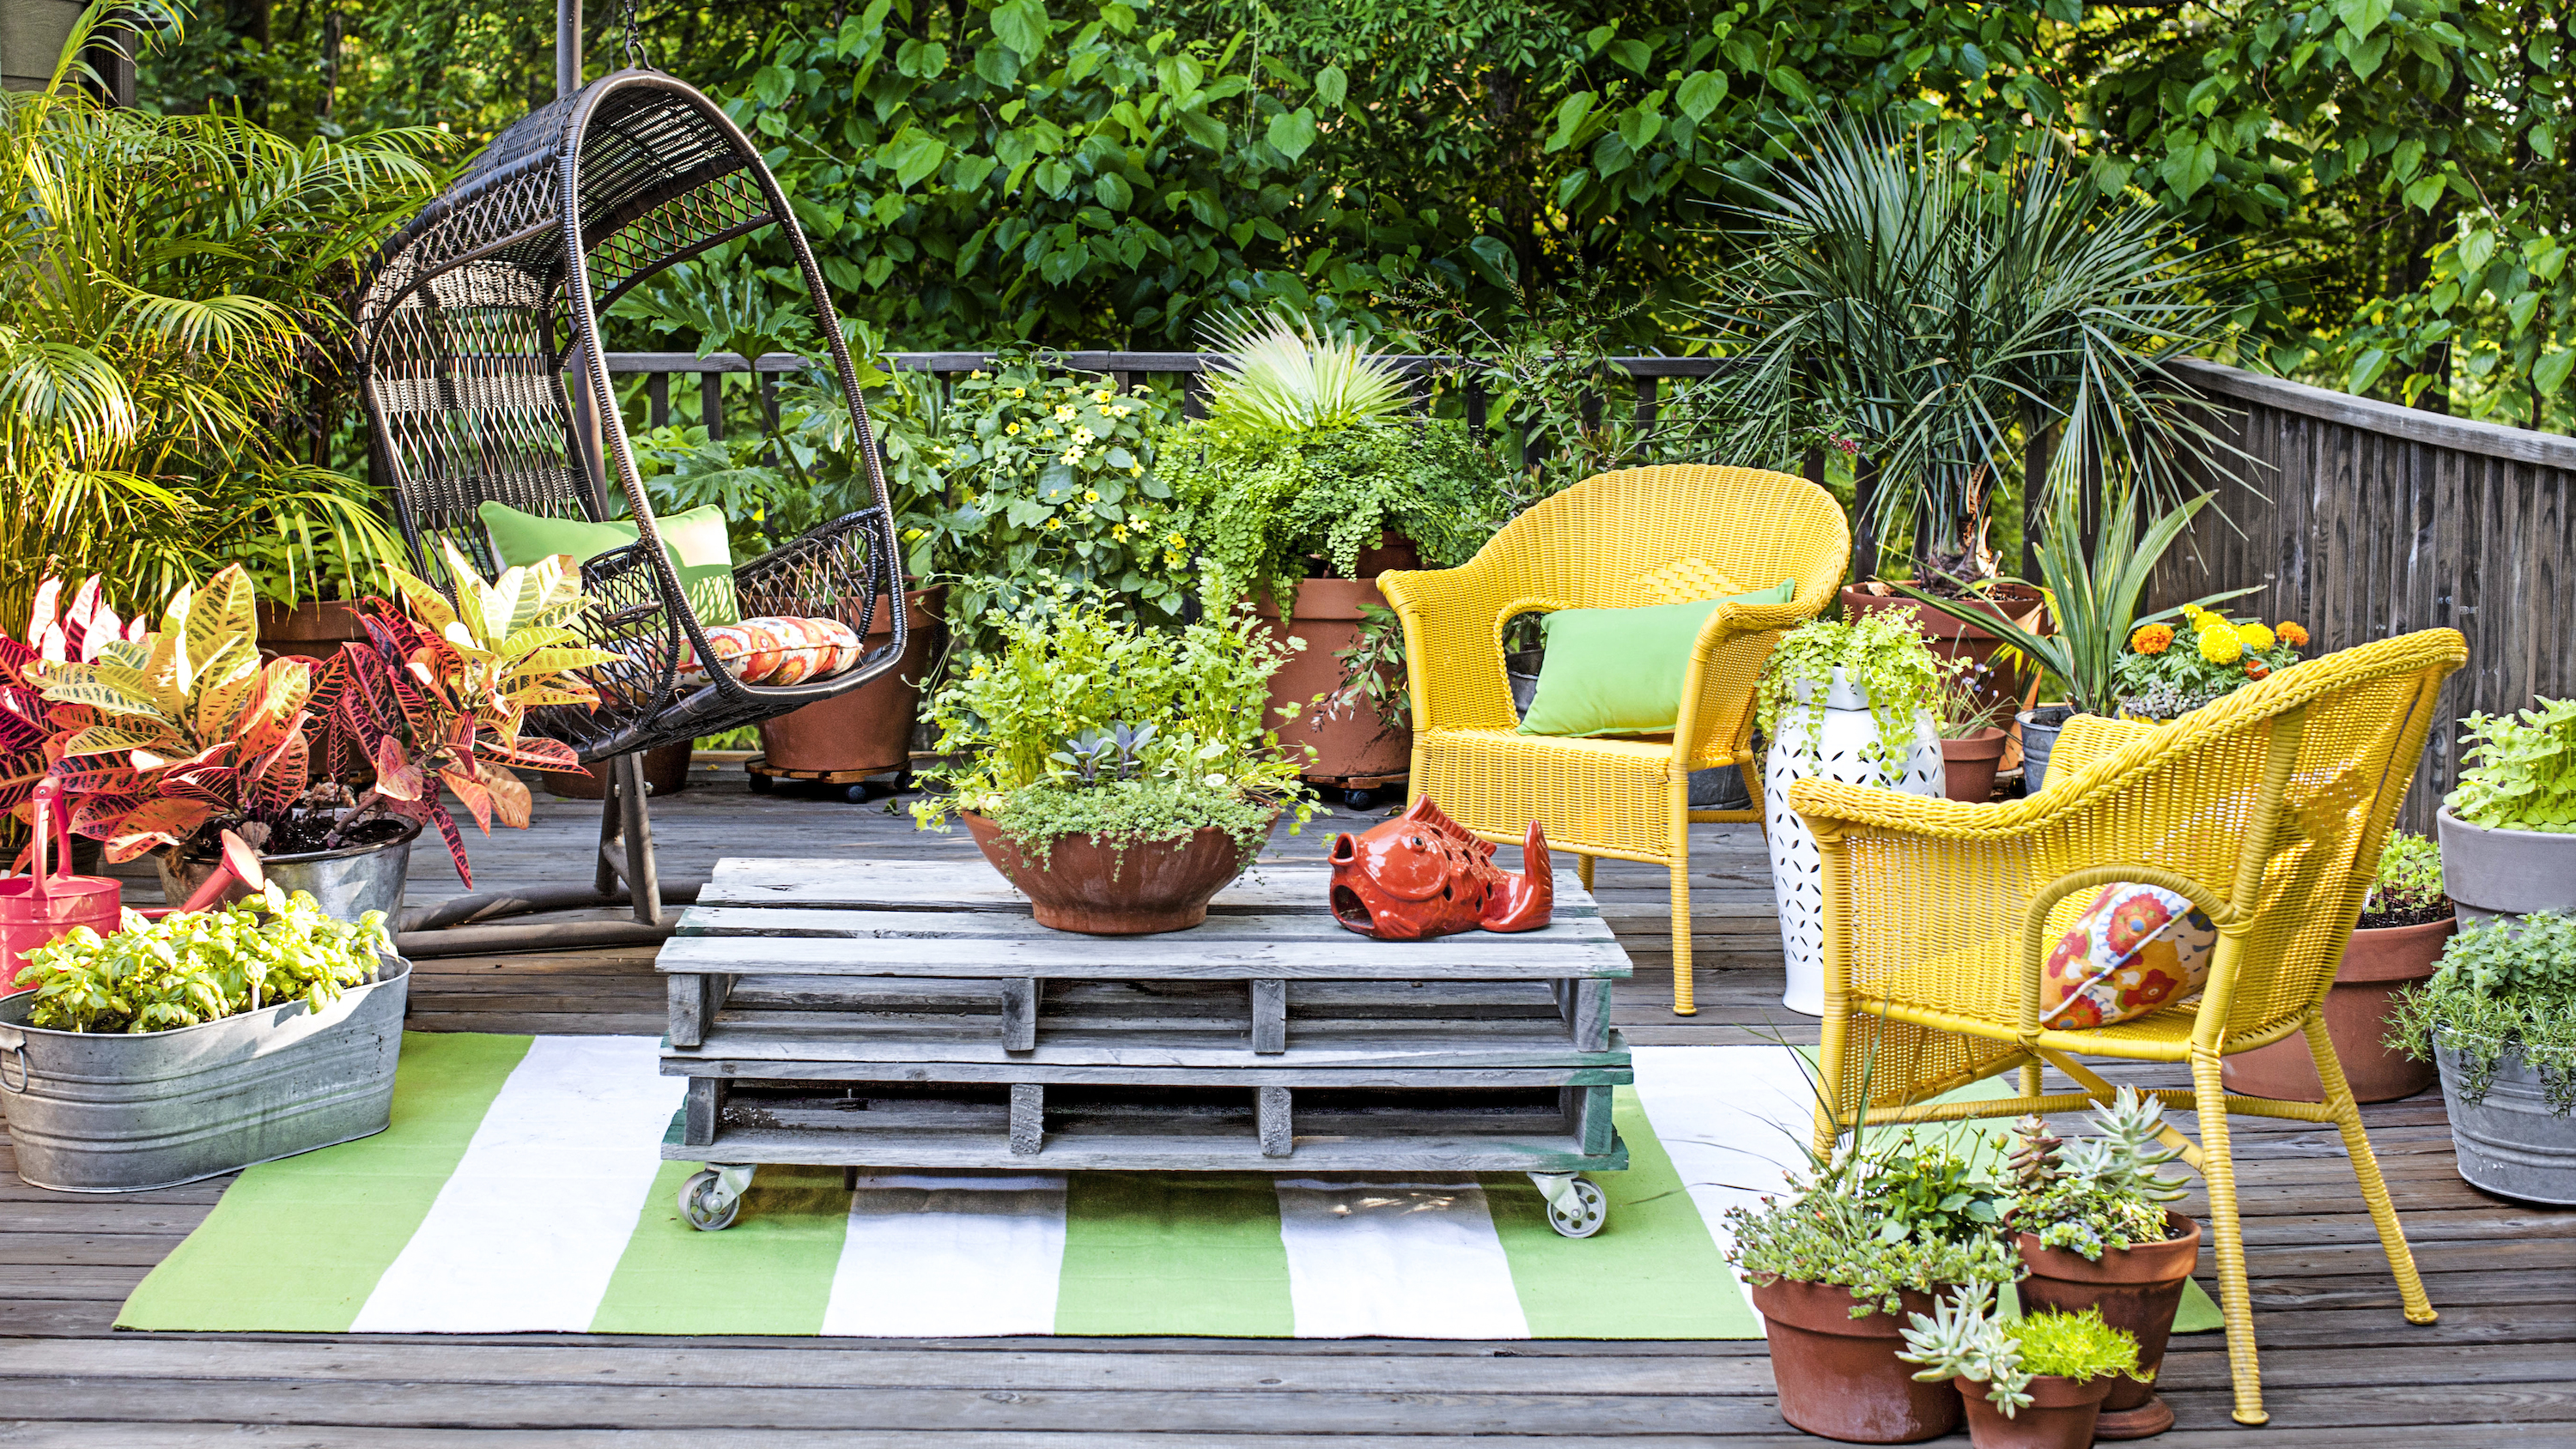 gardening ideas 40 small garden ideas - small garden designs PSTKMZK